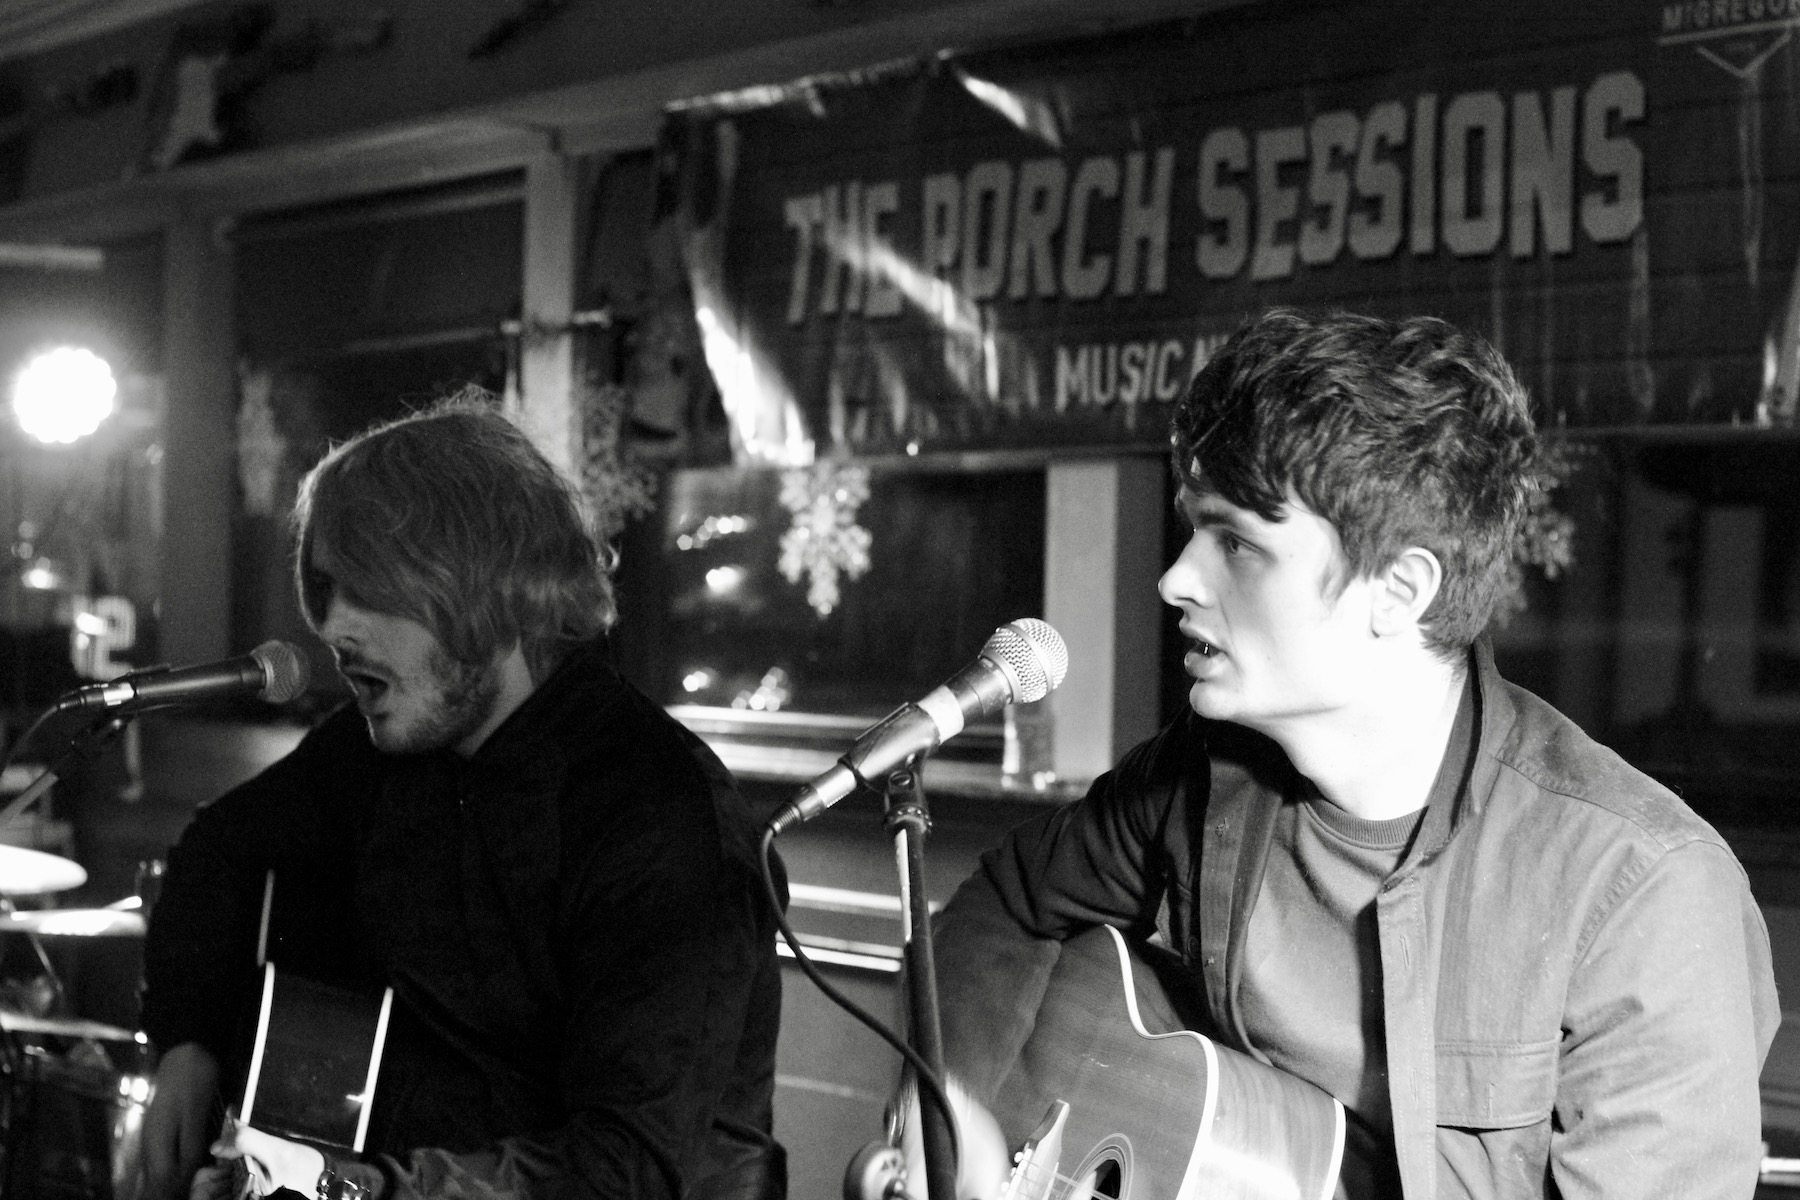 The Oxides at The Porch Sessions Inverness December 20183070 - The Porch Sessions, 8/12/2018 - Images